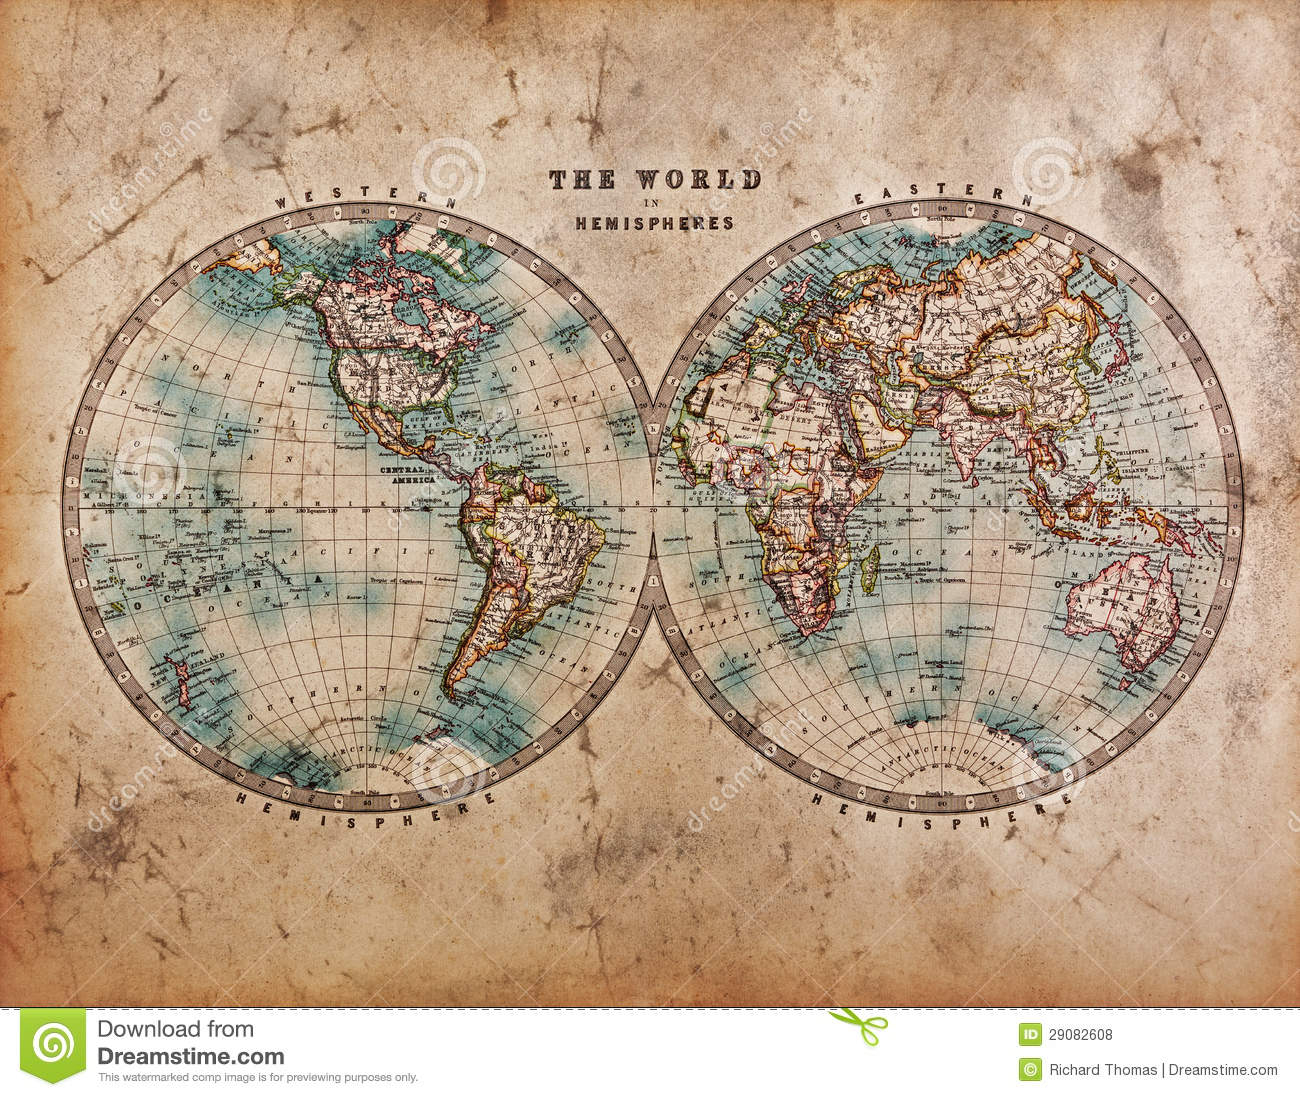 Old World Map In Hemispheres Stock Photo